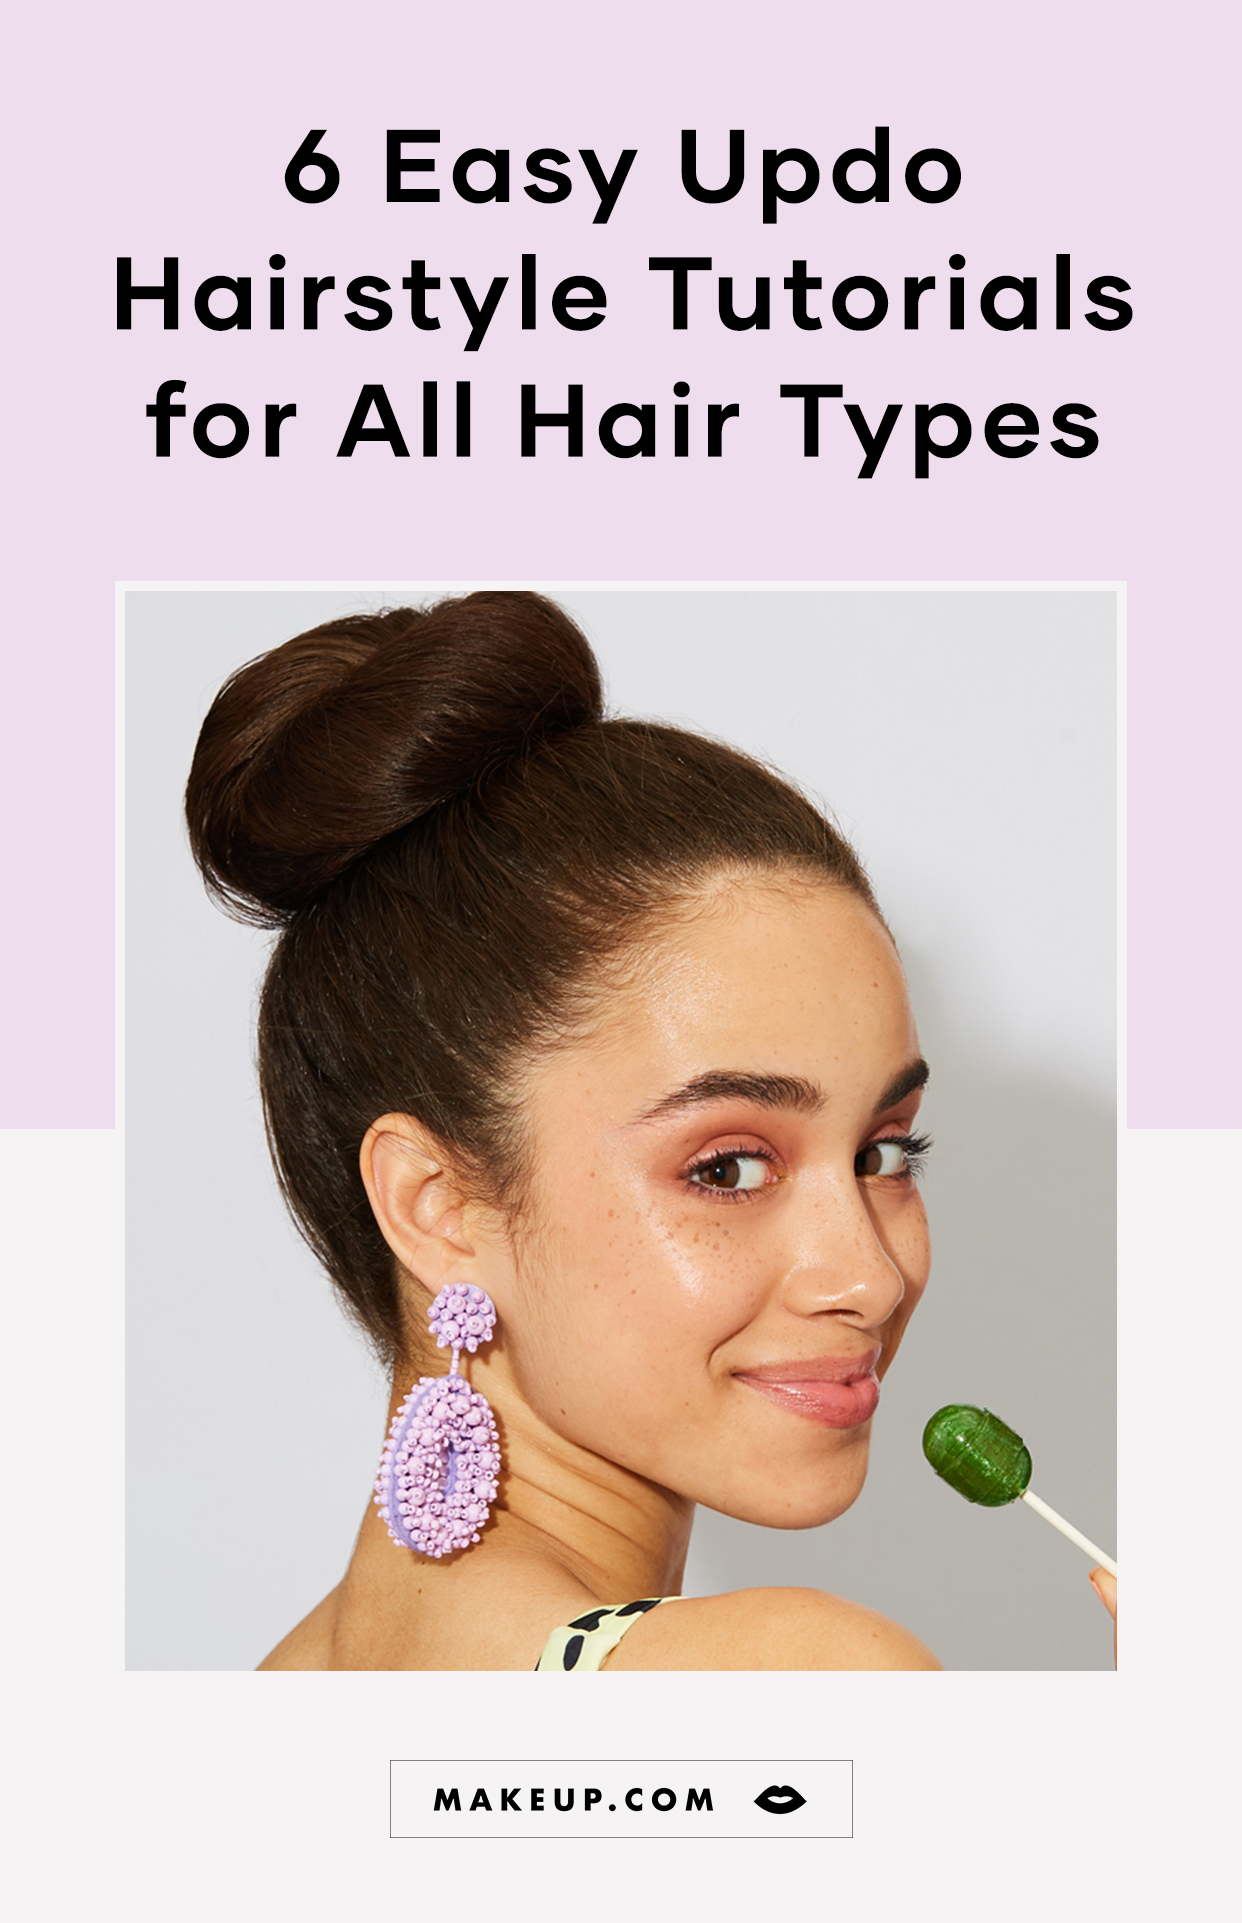 6 Easy Updo Hairstyle Tutorial Videos For All Hair Types Makeup Com By L Oreal In 2020 Easy Updo Hairstyles Tutorials Updo Hairstyles Tutorials Hair Updos